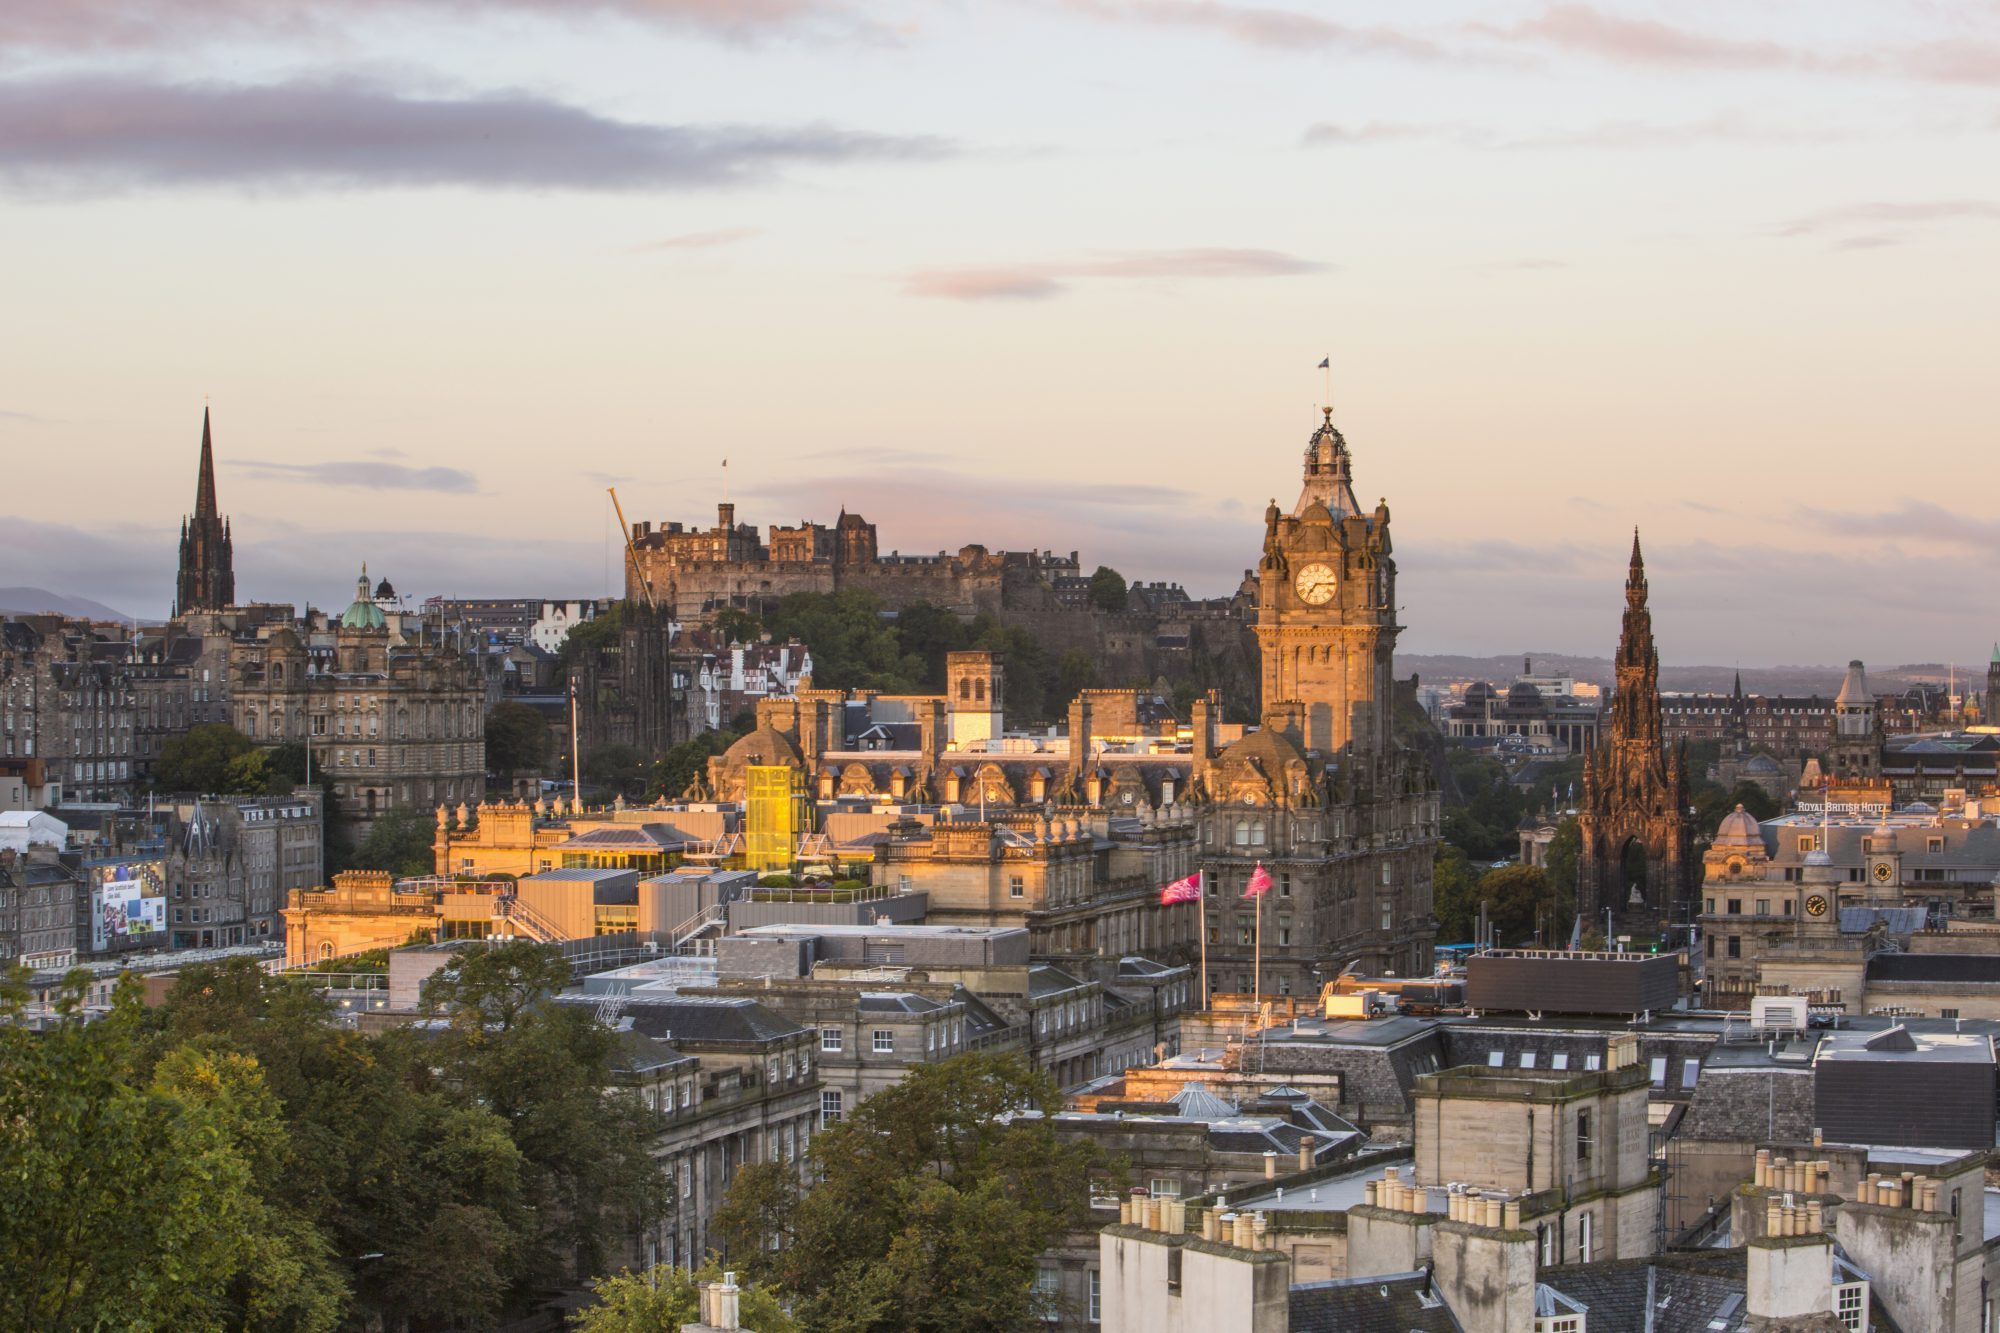 Take the Caledonian Sleeper to and from Edinburgh